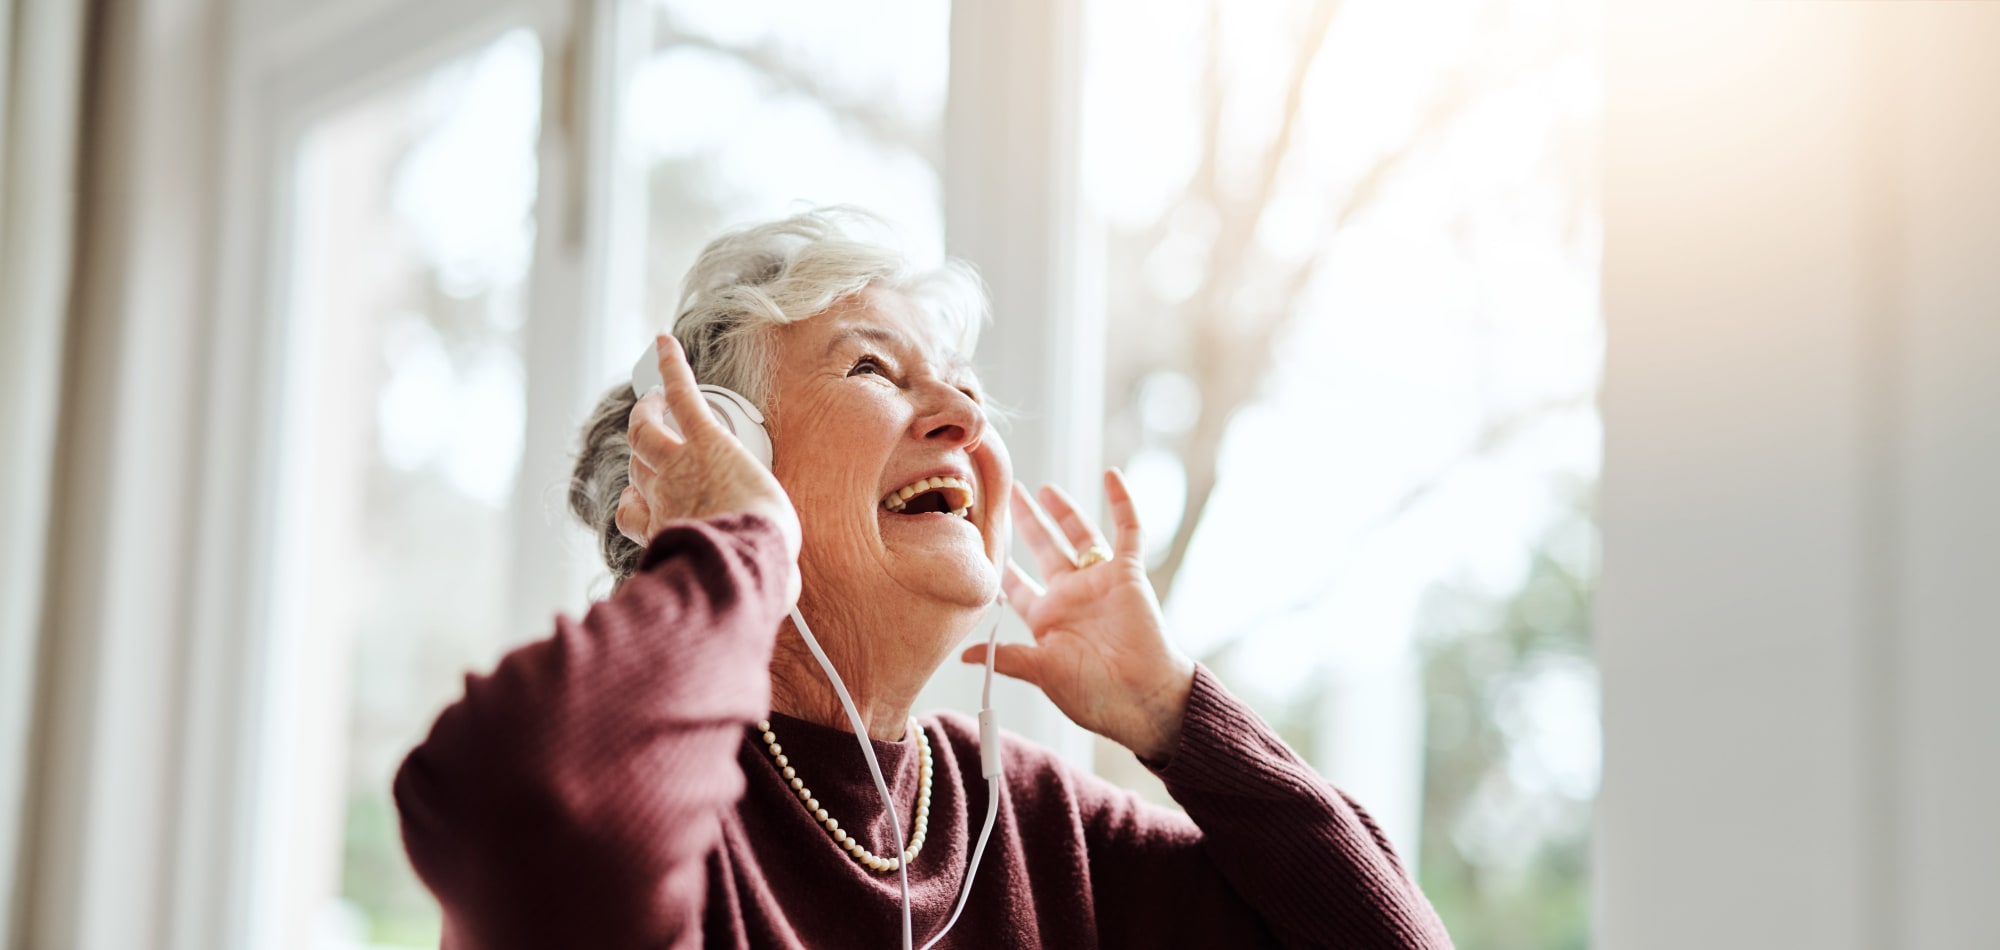 Activities and events at Holstein Senior Living in Holstein, Iowa.